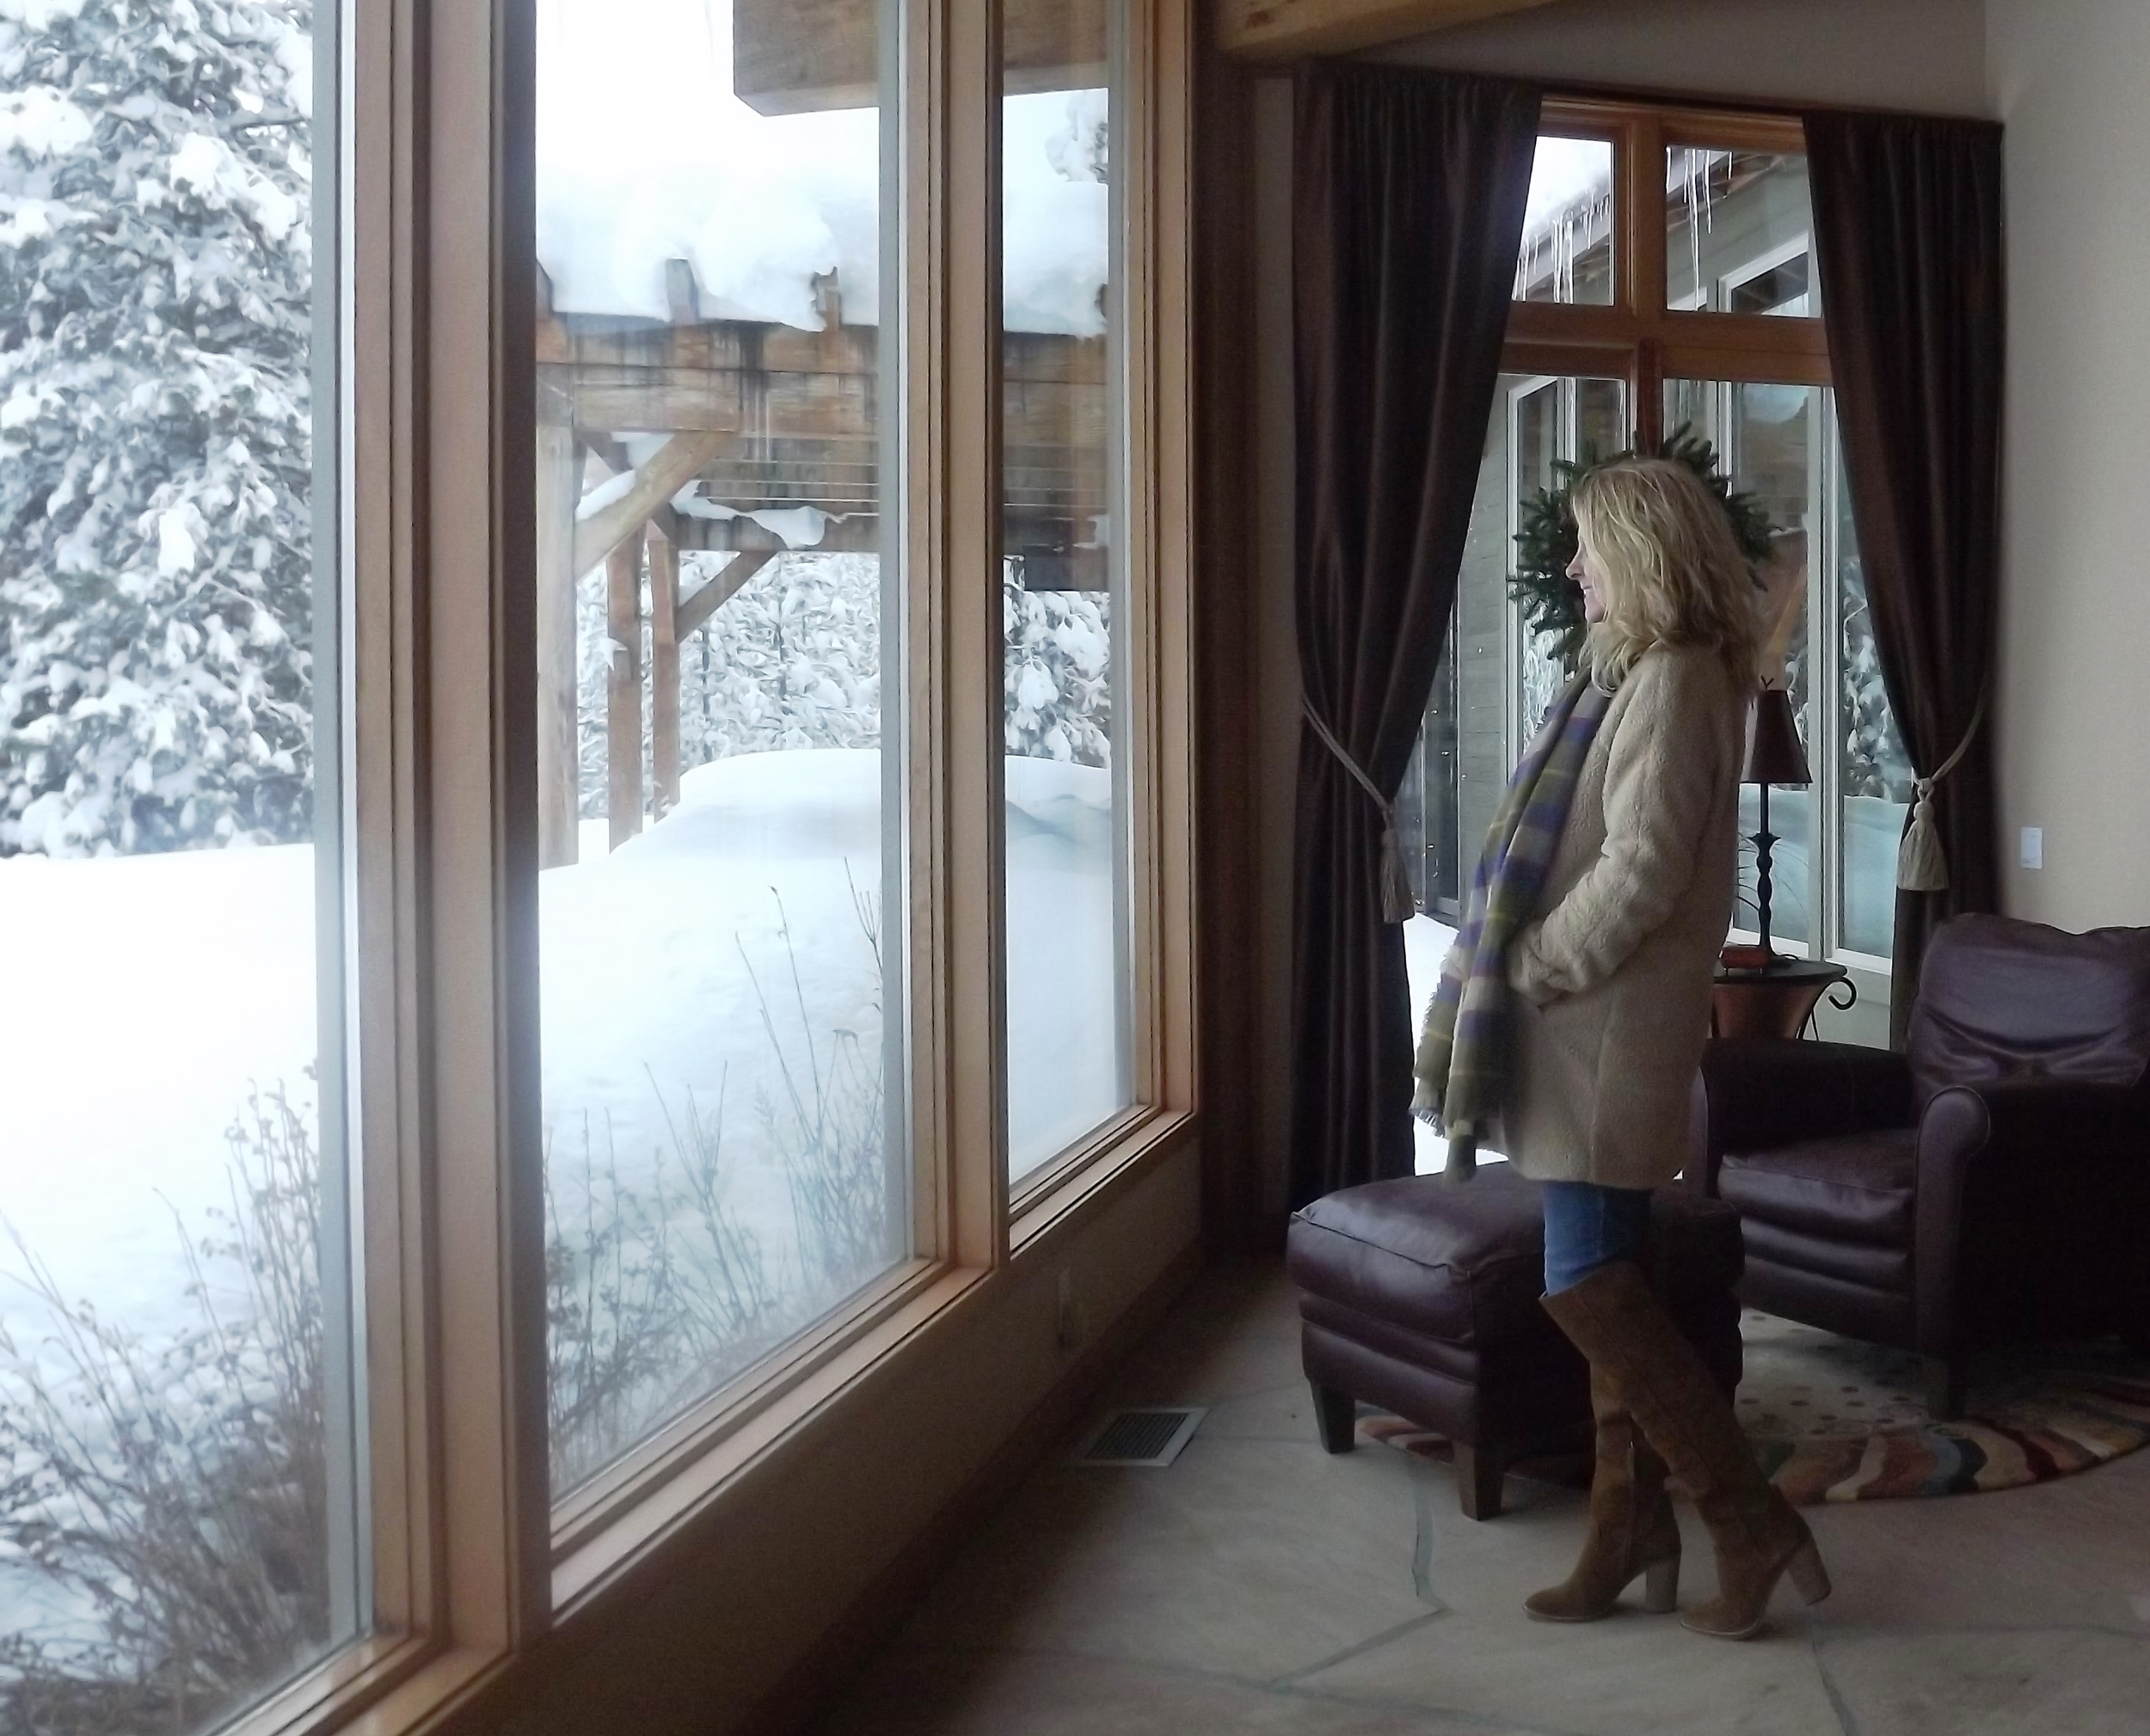 Of course I wouldn't risk damaging my boots in the snow you see out this window. But I can enjoy them around the house, right?